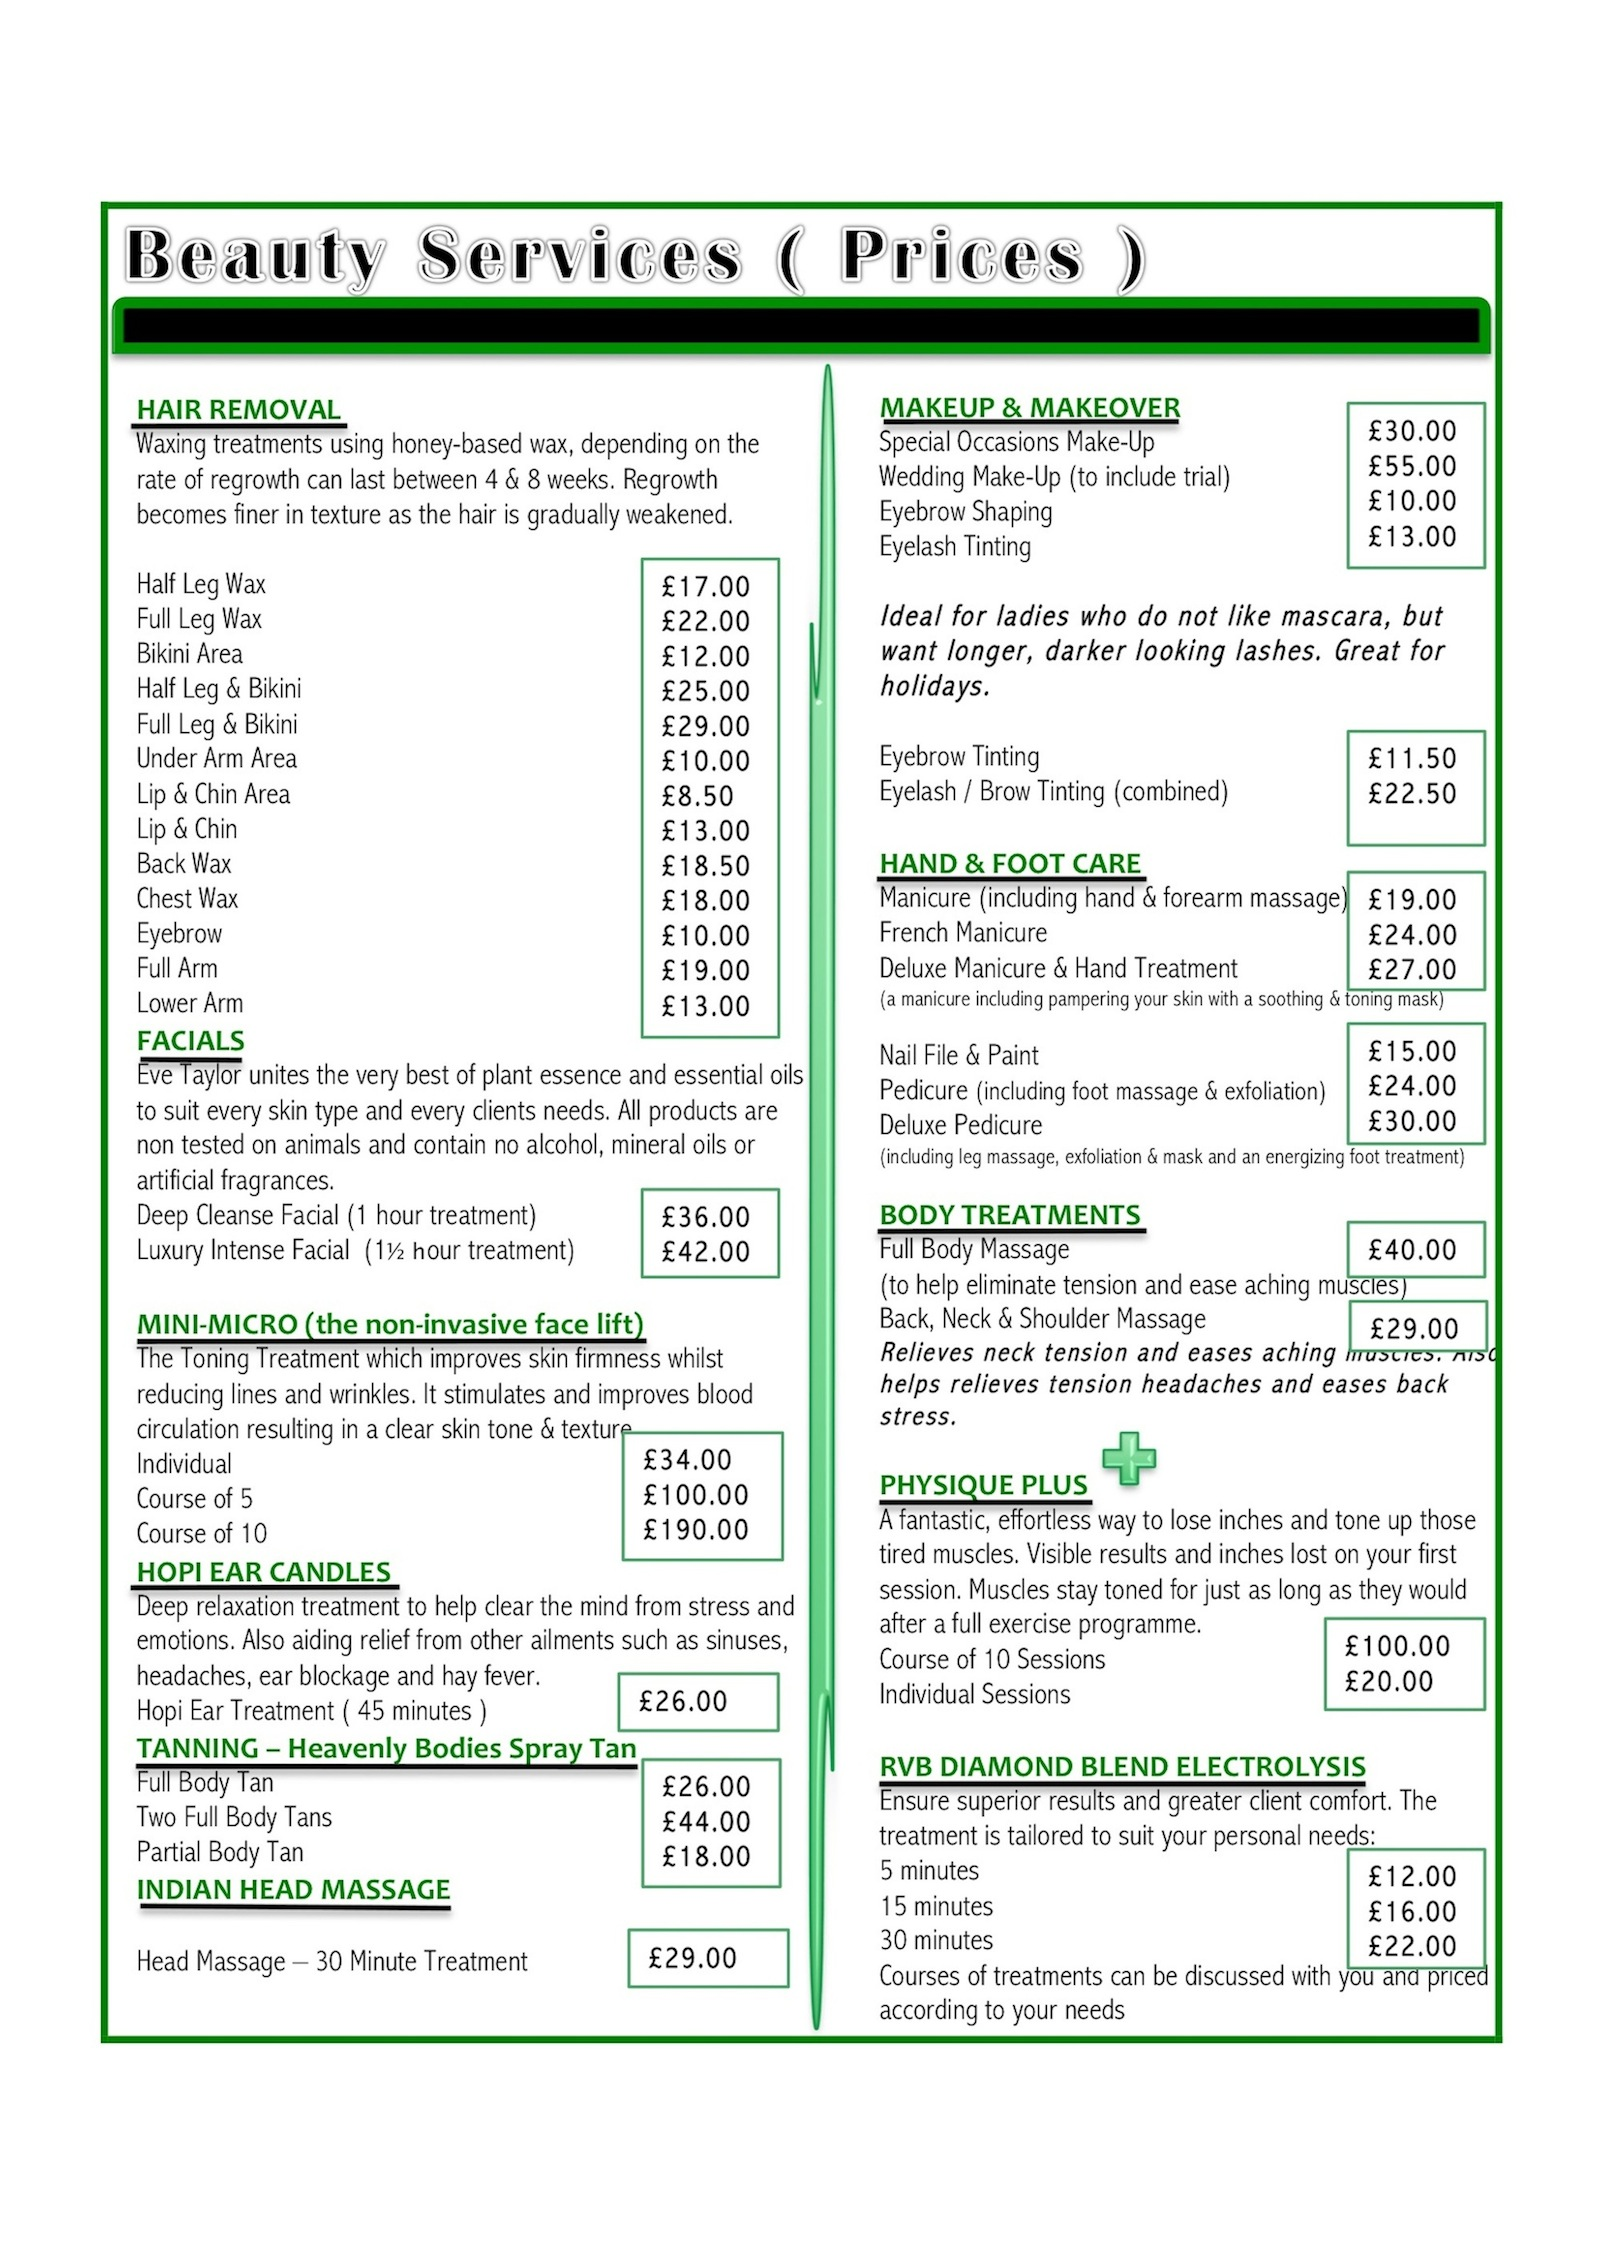 Unusual Salon Price List Template Images - Entry Level Resume ...